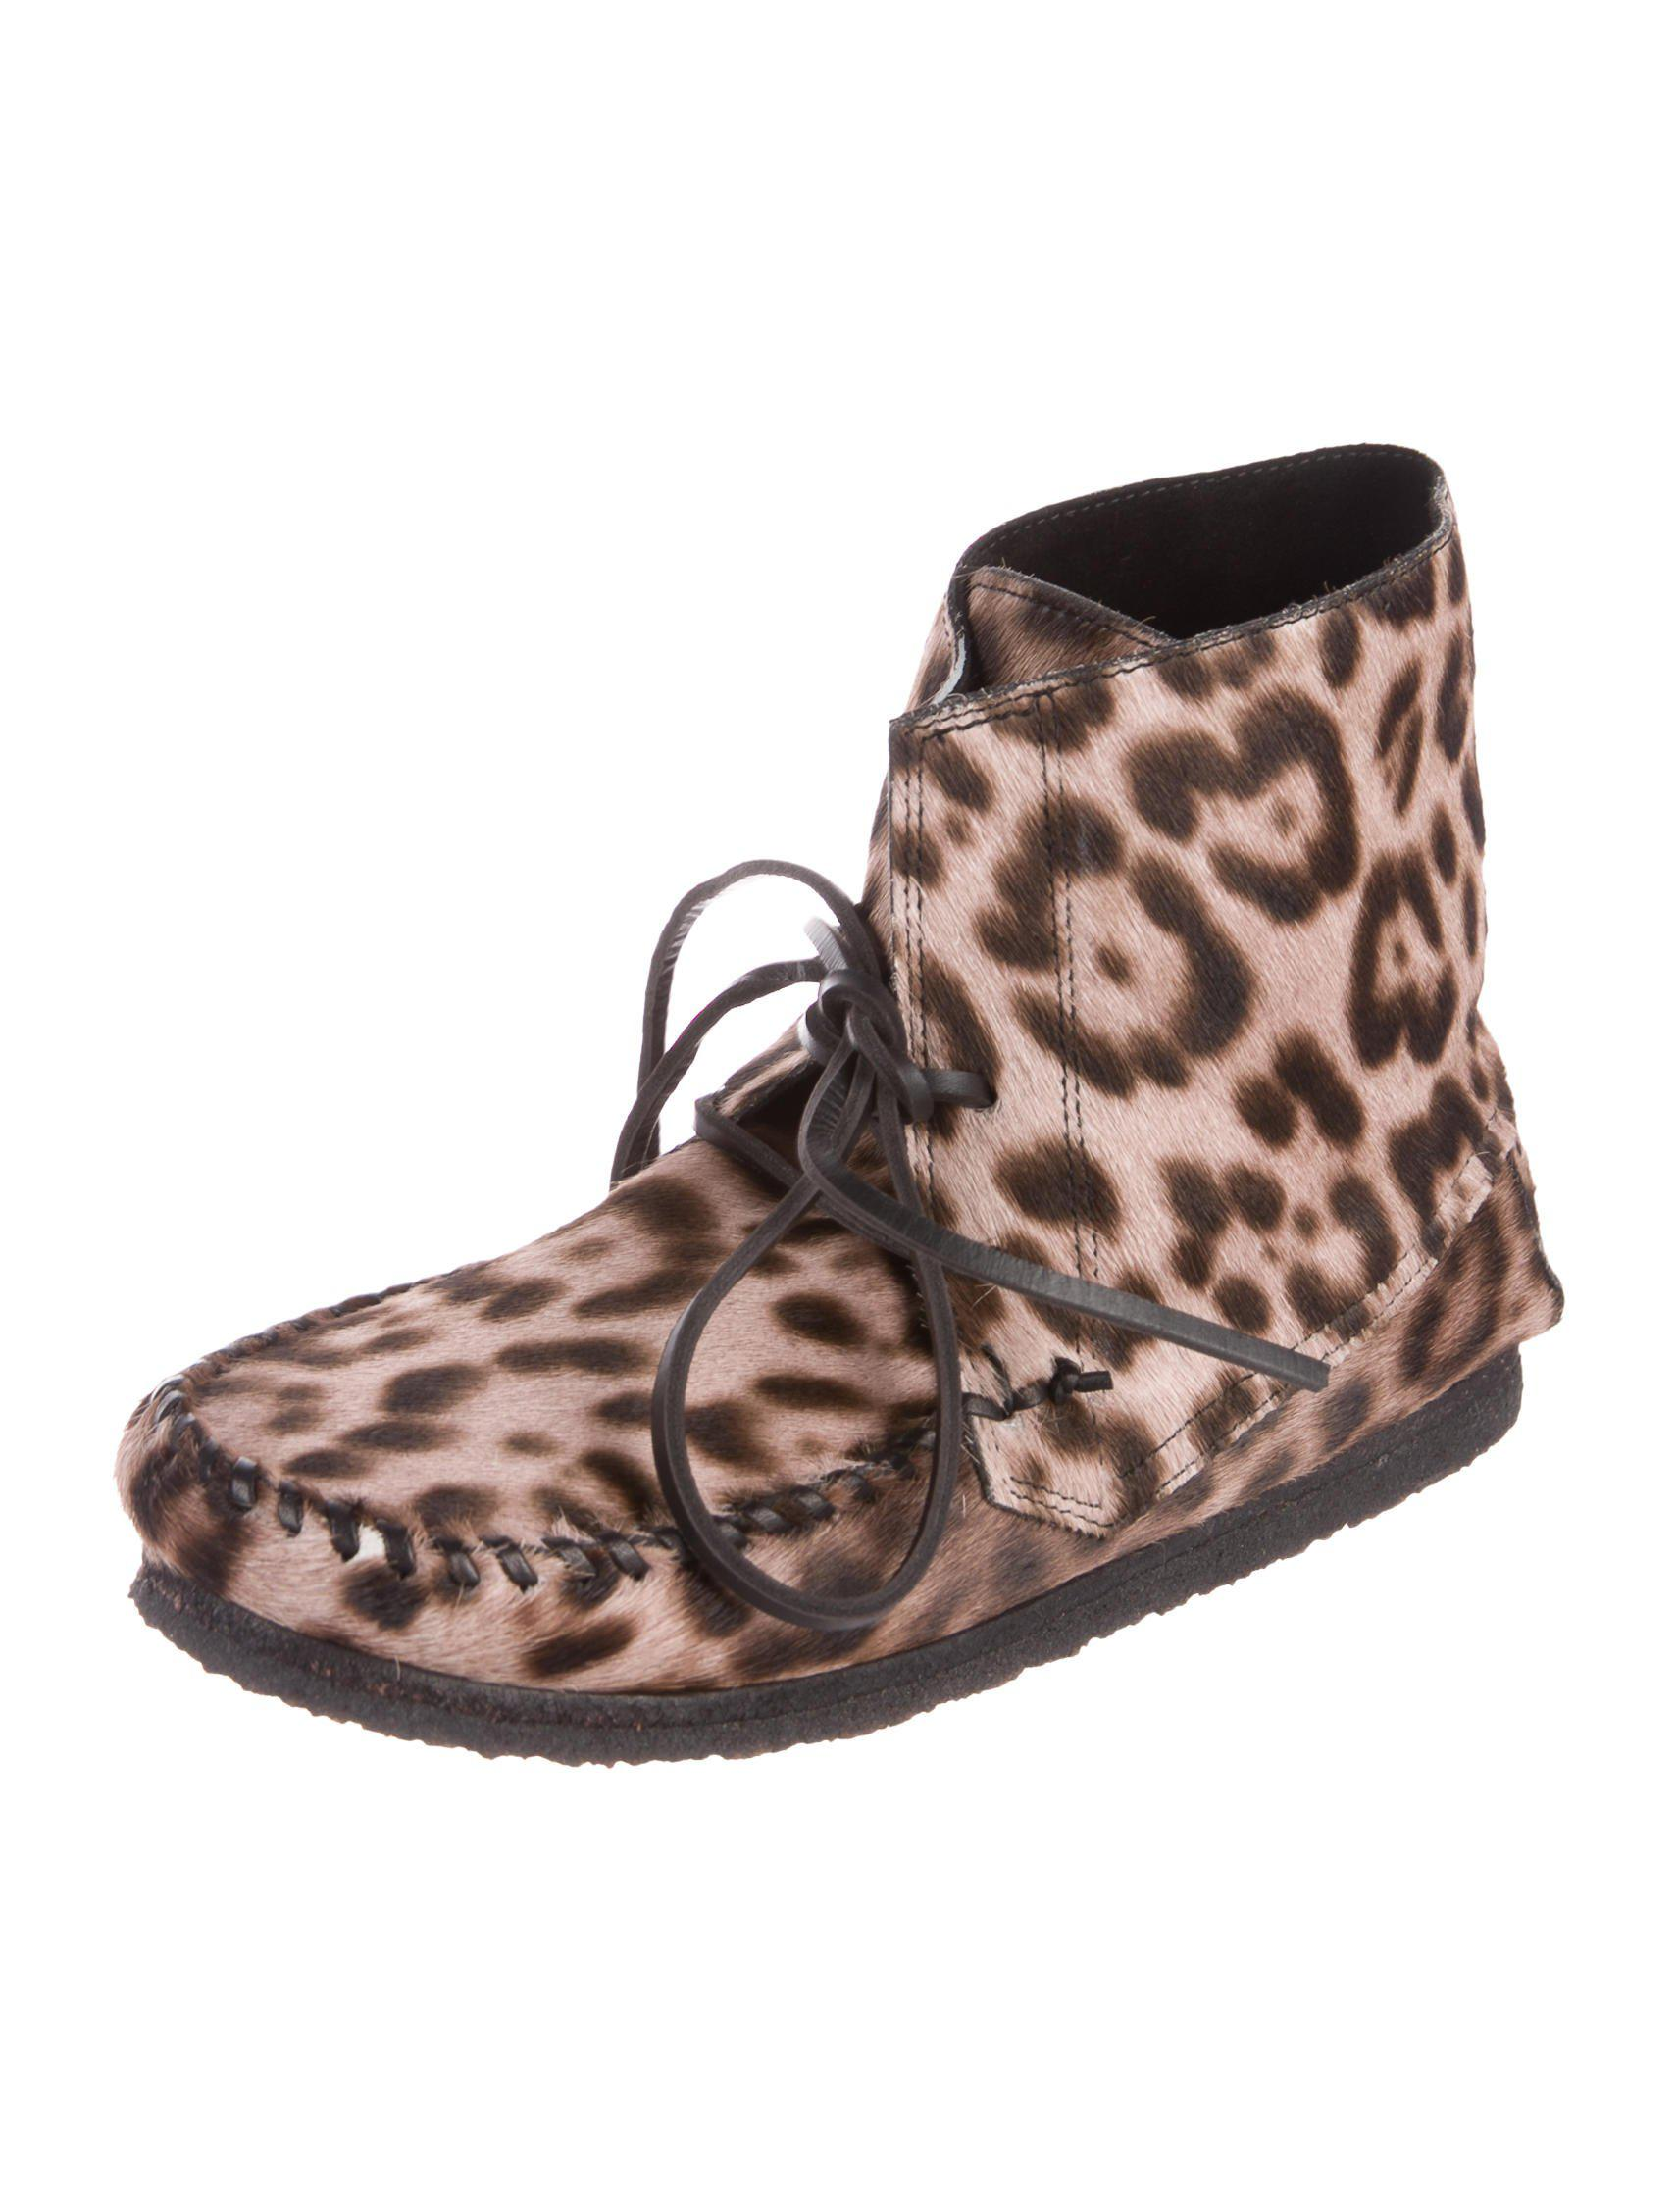 huge surprise cheap price Étoile Isabel Marant Flavie Moccasin Ankle Boots w/ Tags clearance in China shopping online sale online discount sale online clearance fast delivery I0QCqg